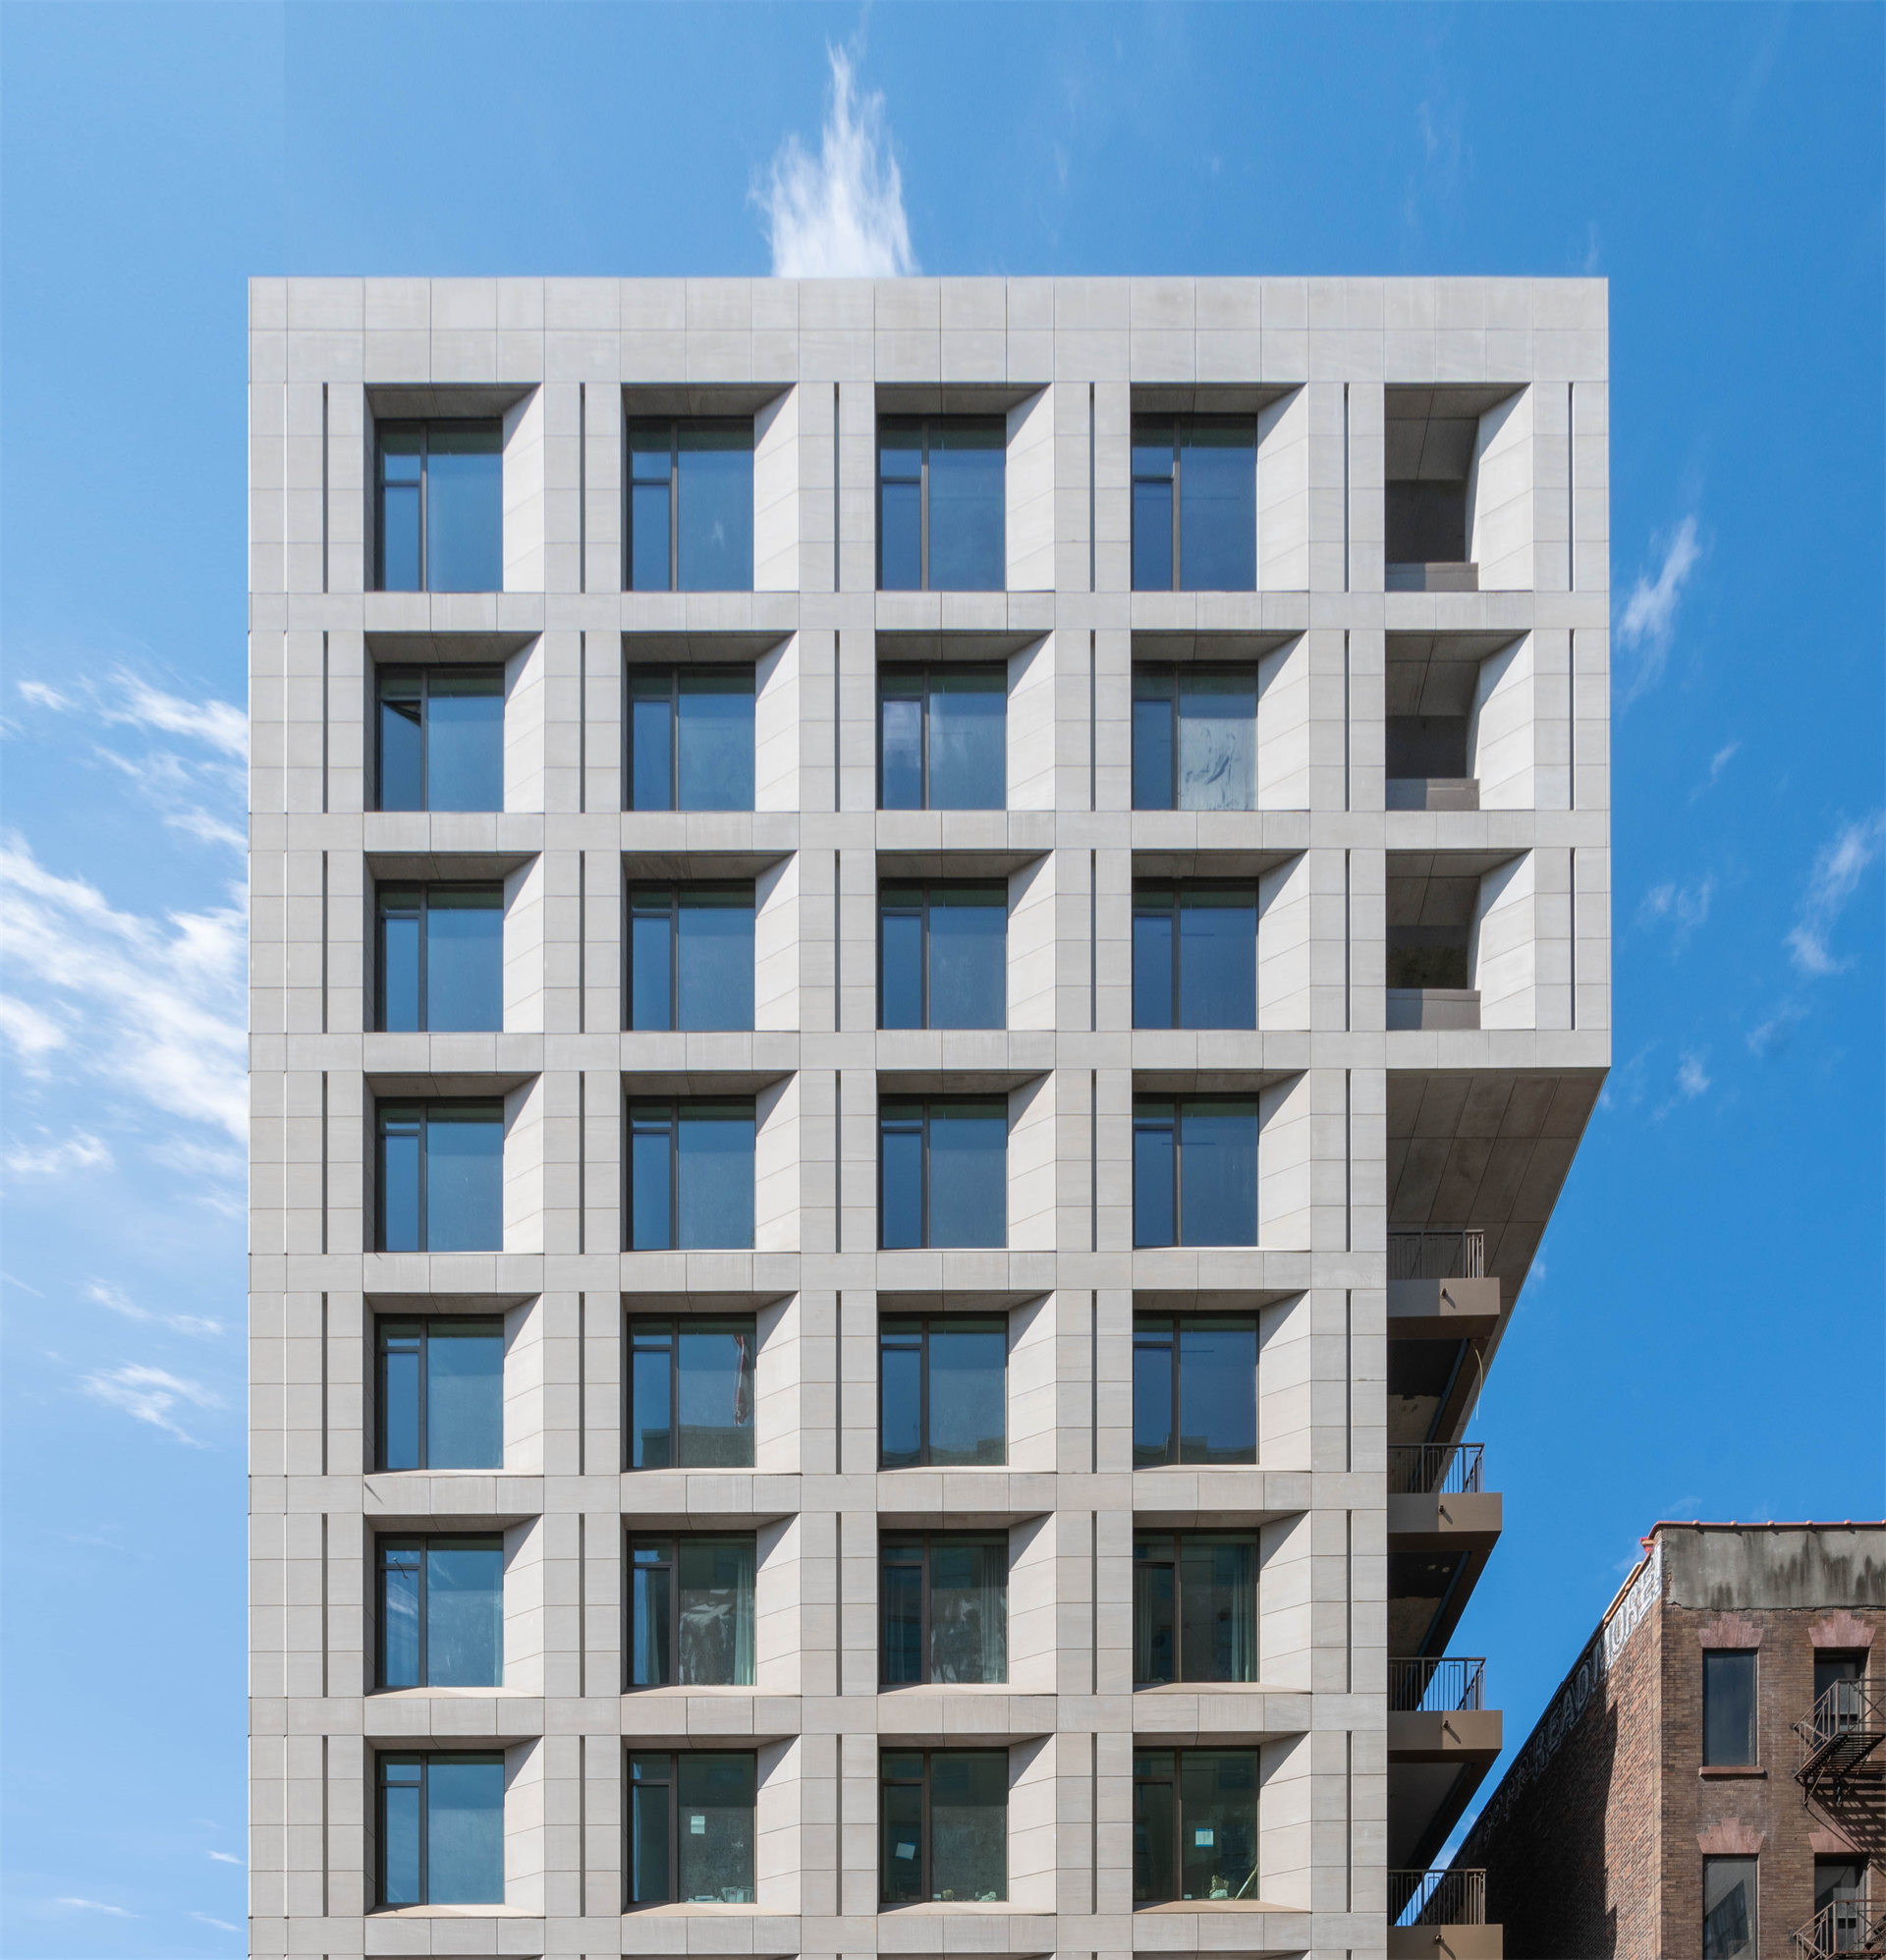 2. The Emerson bâtiment à 500 West 25th St, Chelsea, New York, NY 10001